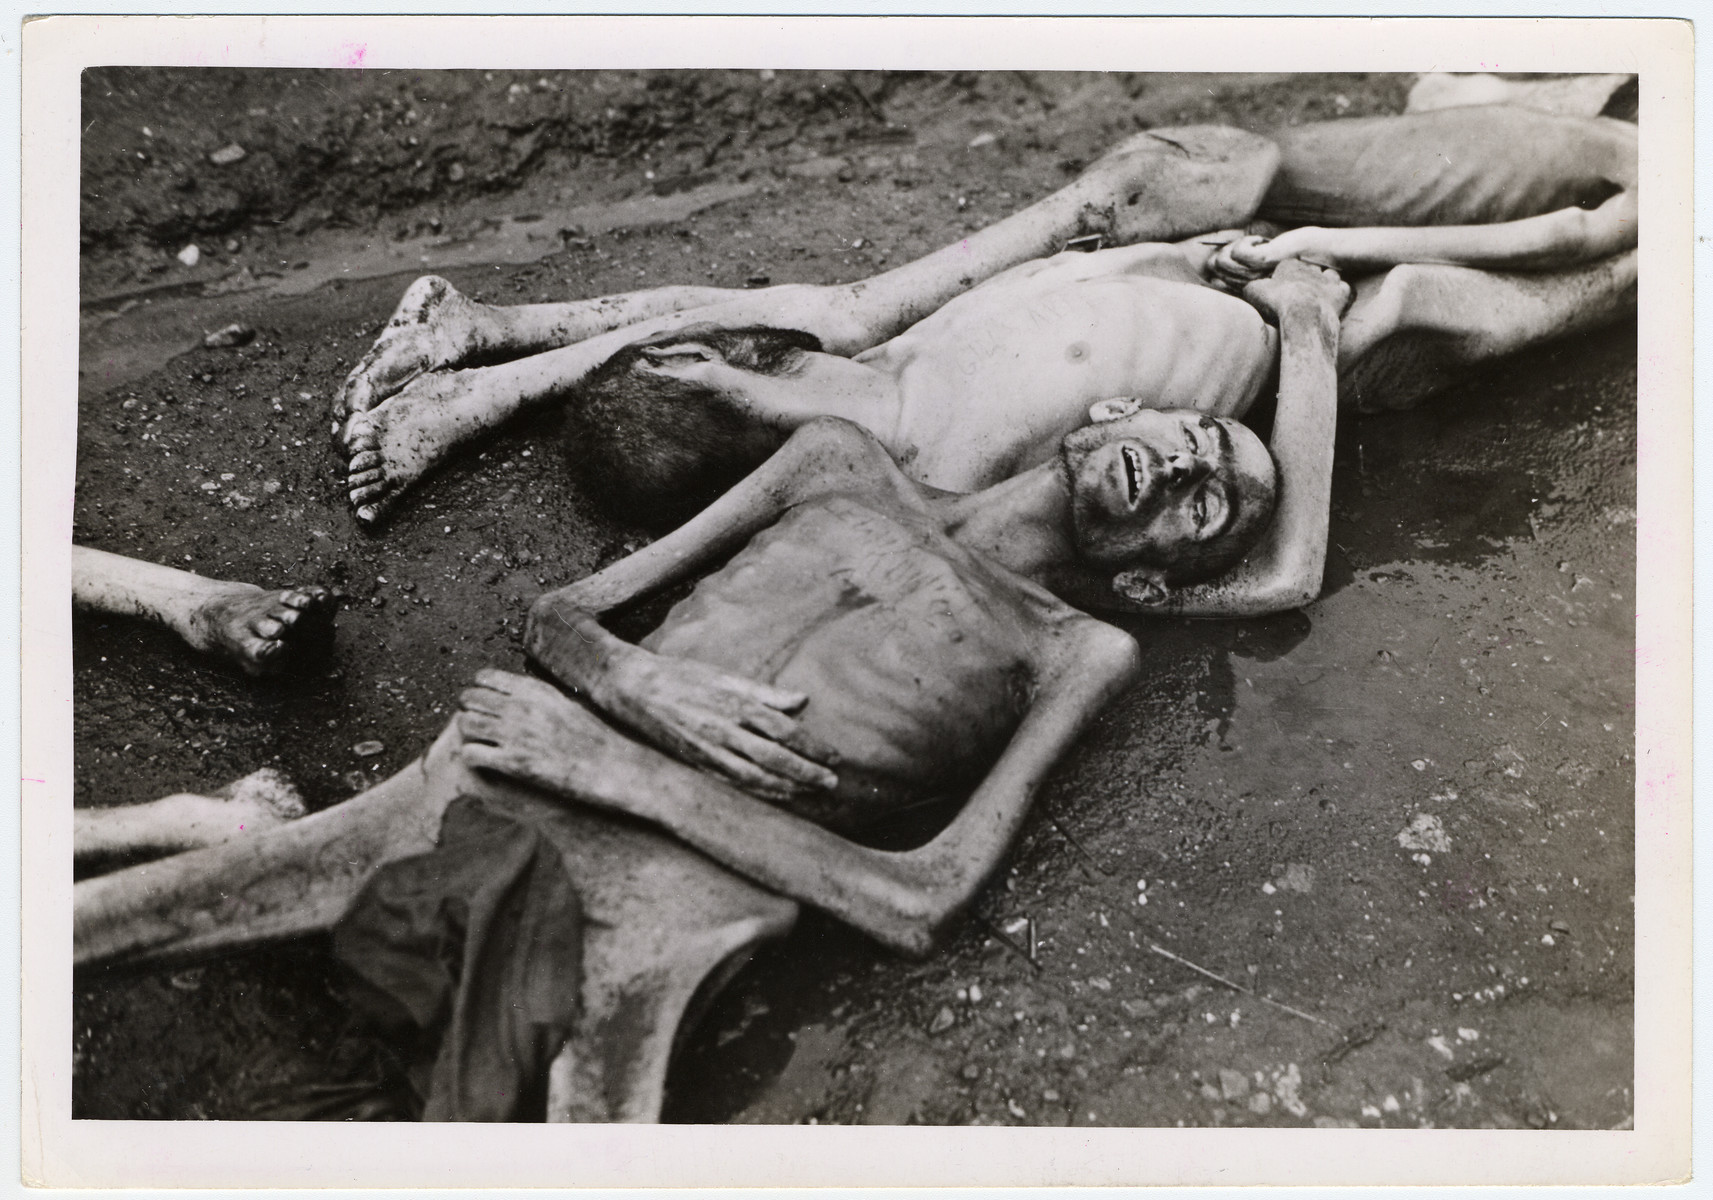 "Emaciated body of a prisoner at Landsberg, found by the liberating American 7th Army.  Original caption reads: ""The Landsberg Atrocity: The emaciated bodies of Jewish prisoners bear evidence of the slow death by starvation they were undergoing before having been locked in their wooden huts by retreating Nazi prison guards, who set the huts afire and left. These inmates managed to muster enough strength to break out of their huts but not before they succumbed to the smoke and flames."""